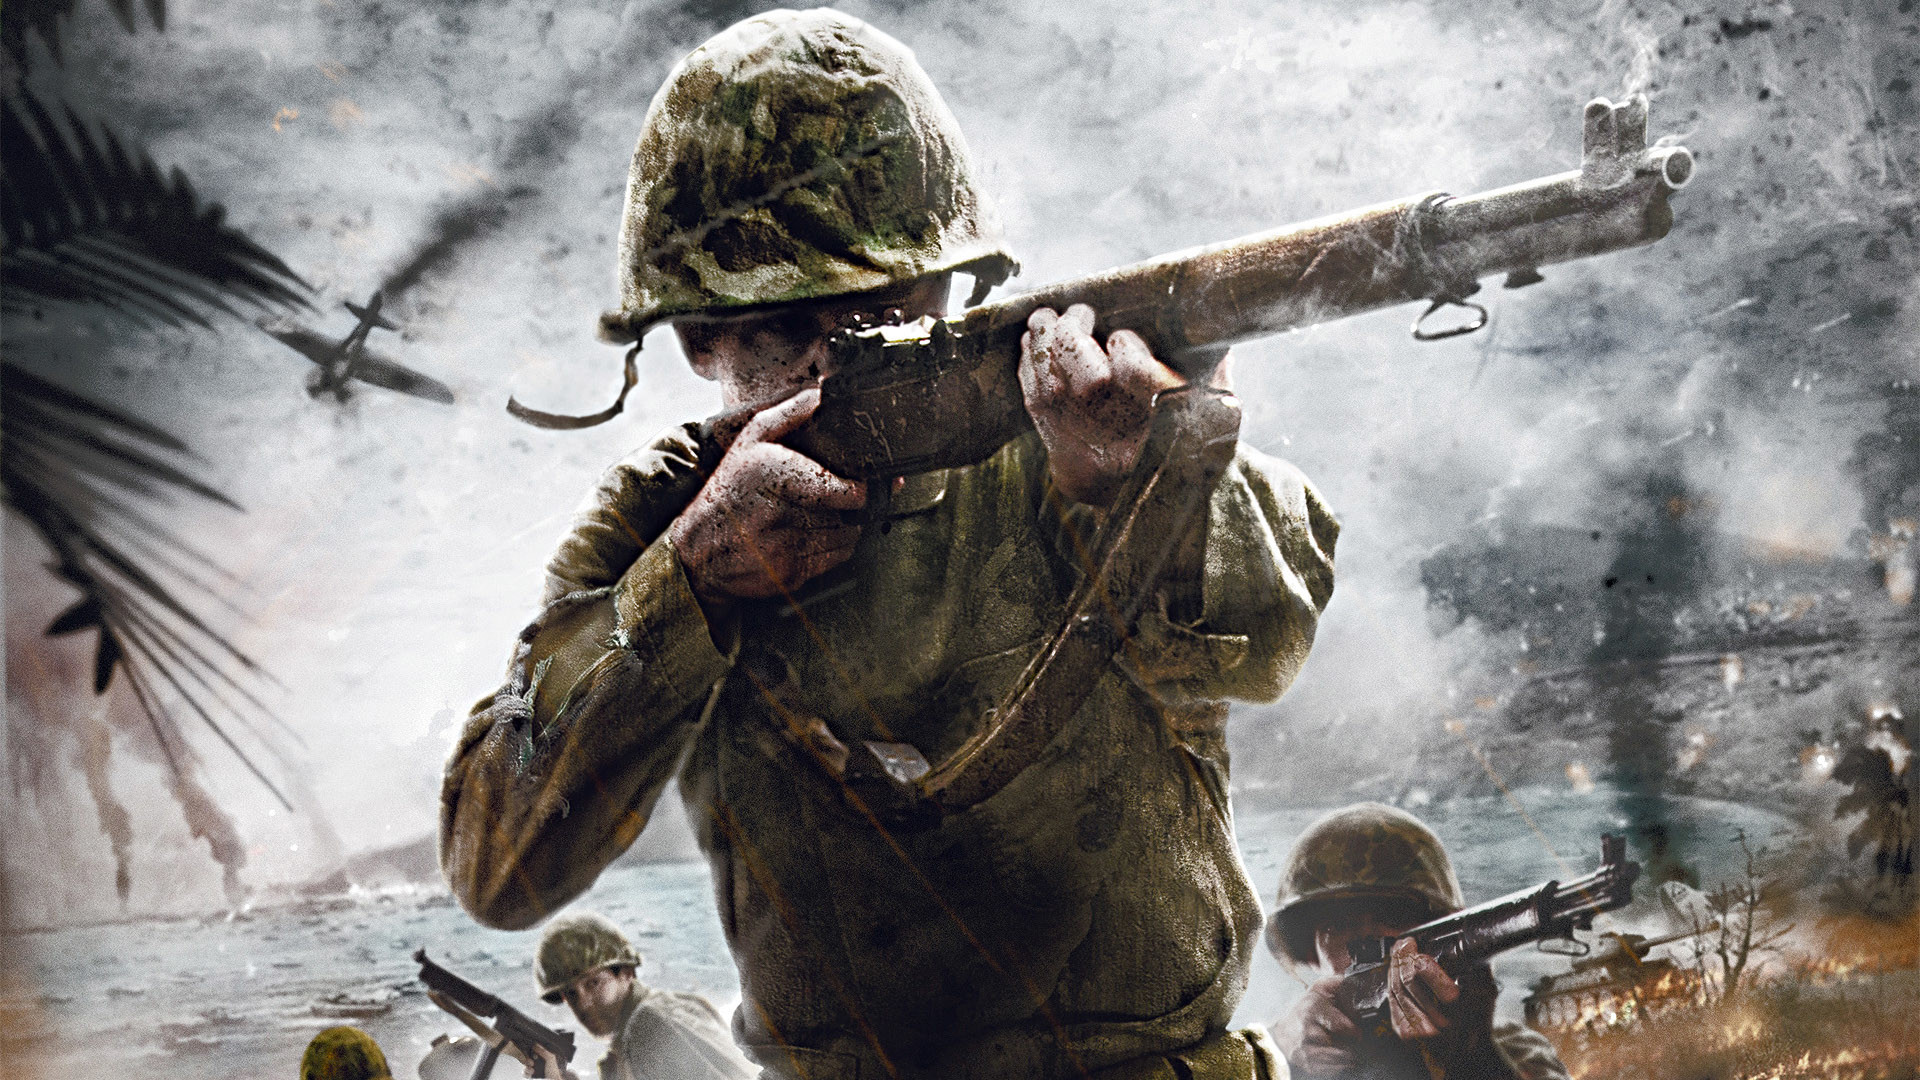 Res: 1920x1080, Awesome army soldier wallpaper